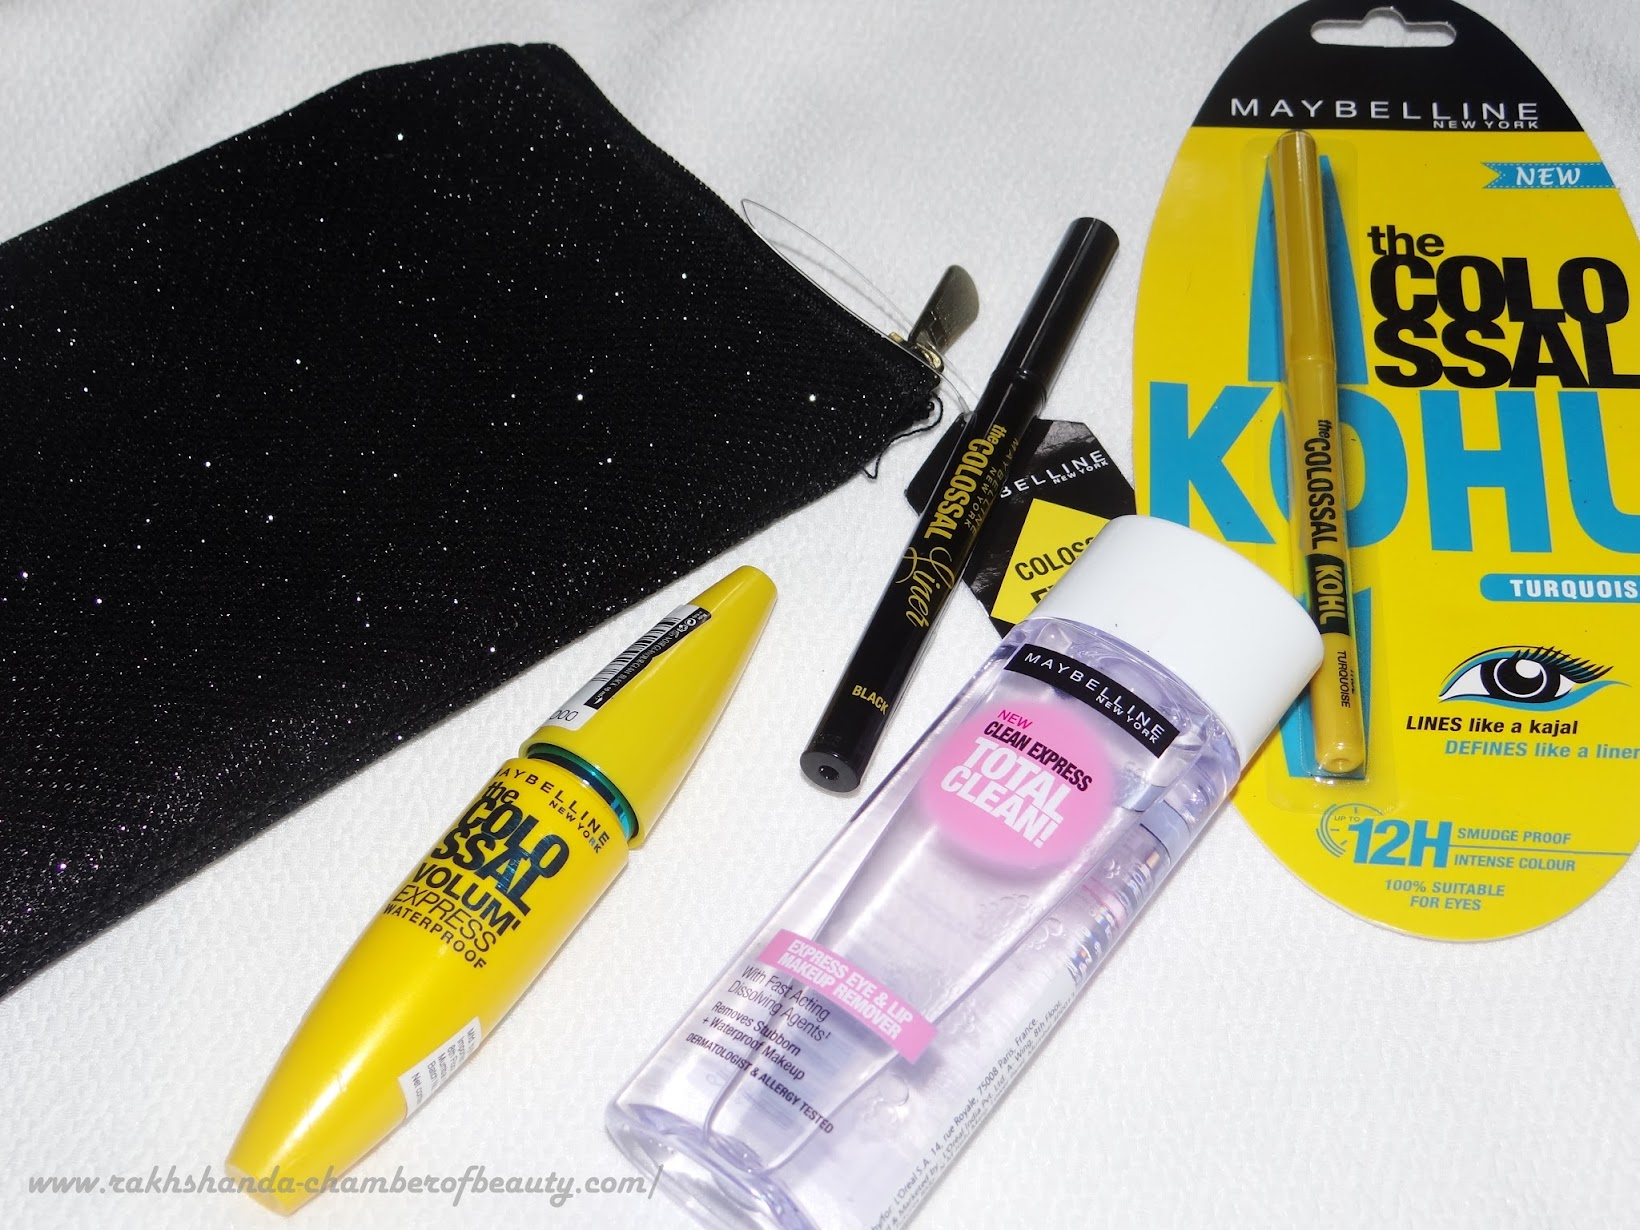 Maybelline NY Colossal Eye Kit- review, swatches, price in India, Colossal kohl, Colossal mascara, Colossal eyeliner, Clean express Makeup remover, Indian beauty blogger